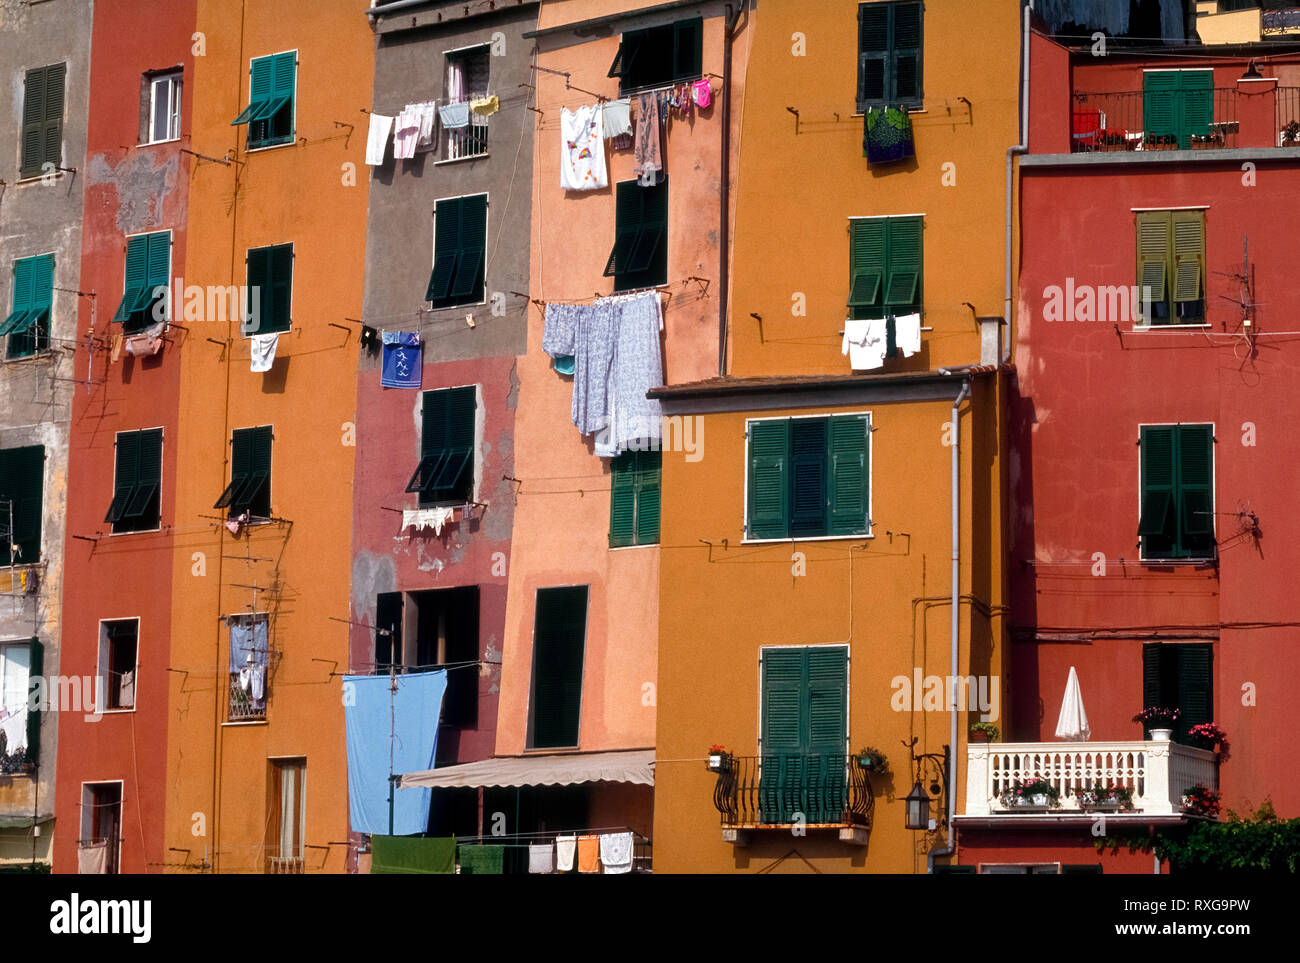 Multicolored facades marked by windows, shutters, balconies, and laundry hung out to dry decorate the vertical dwellings that overlook the boat harbor at Portovenere, Italy. Strong sunshine along the Mediterranean seacoast is a cause for frequent repainting of the exterior walls of these attached residences. This medieval fishing village on the Italian Riviera is among the most picturesque but lesser-known tourist towns in the Liguria region. Stock Photo